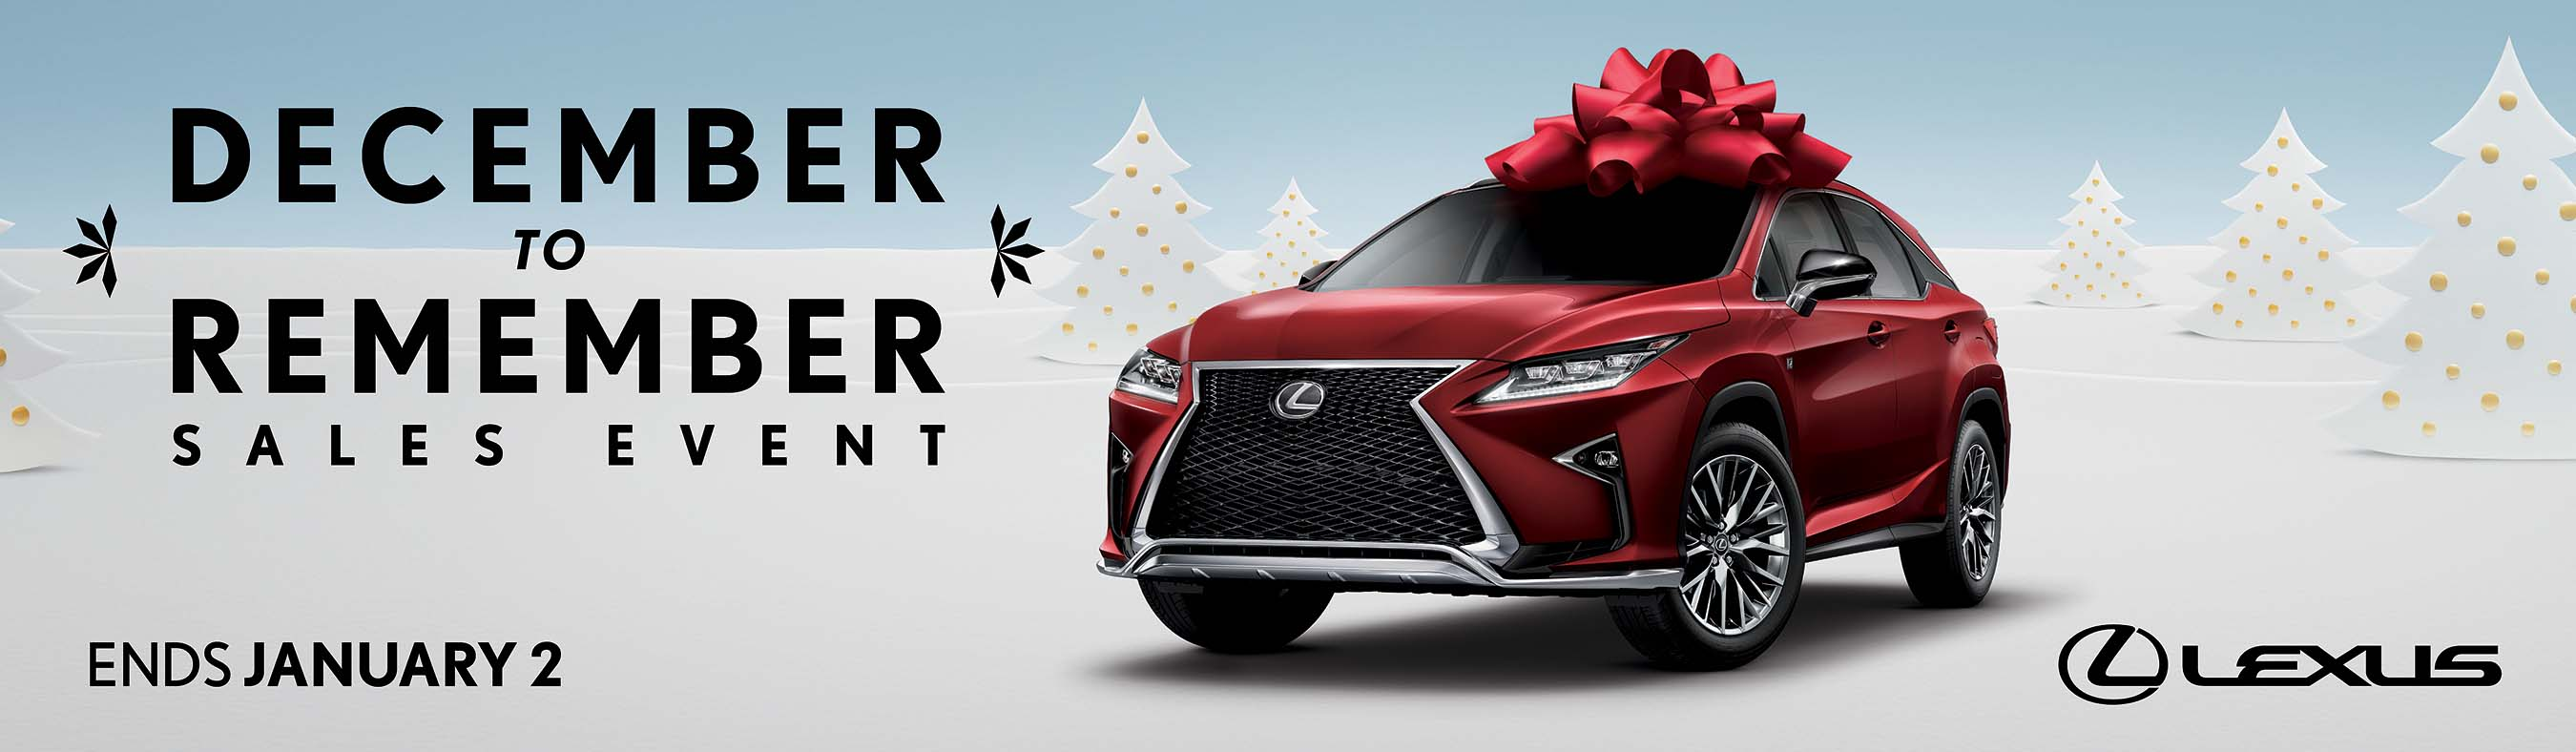 2017 Lexus December To Remember S Event Digital Ad